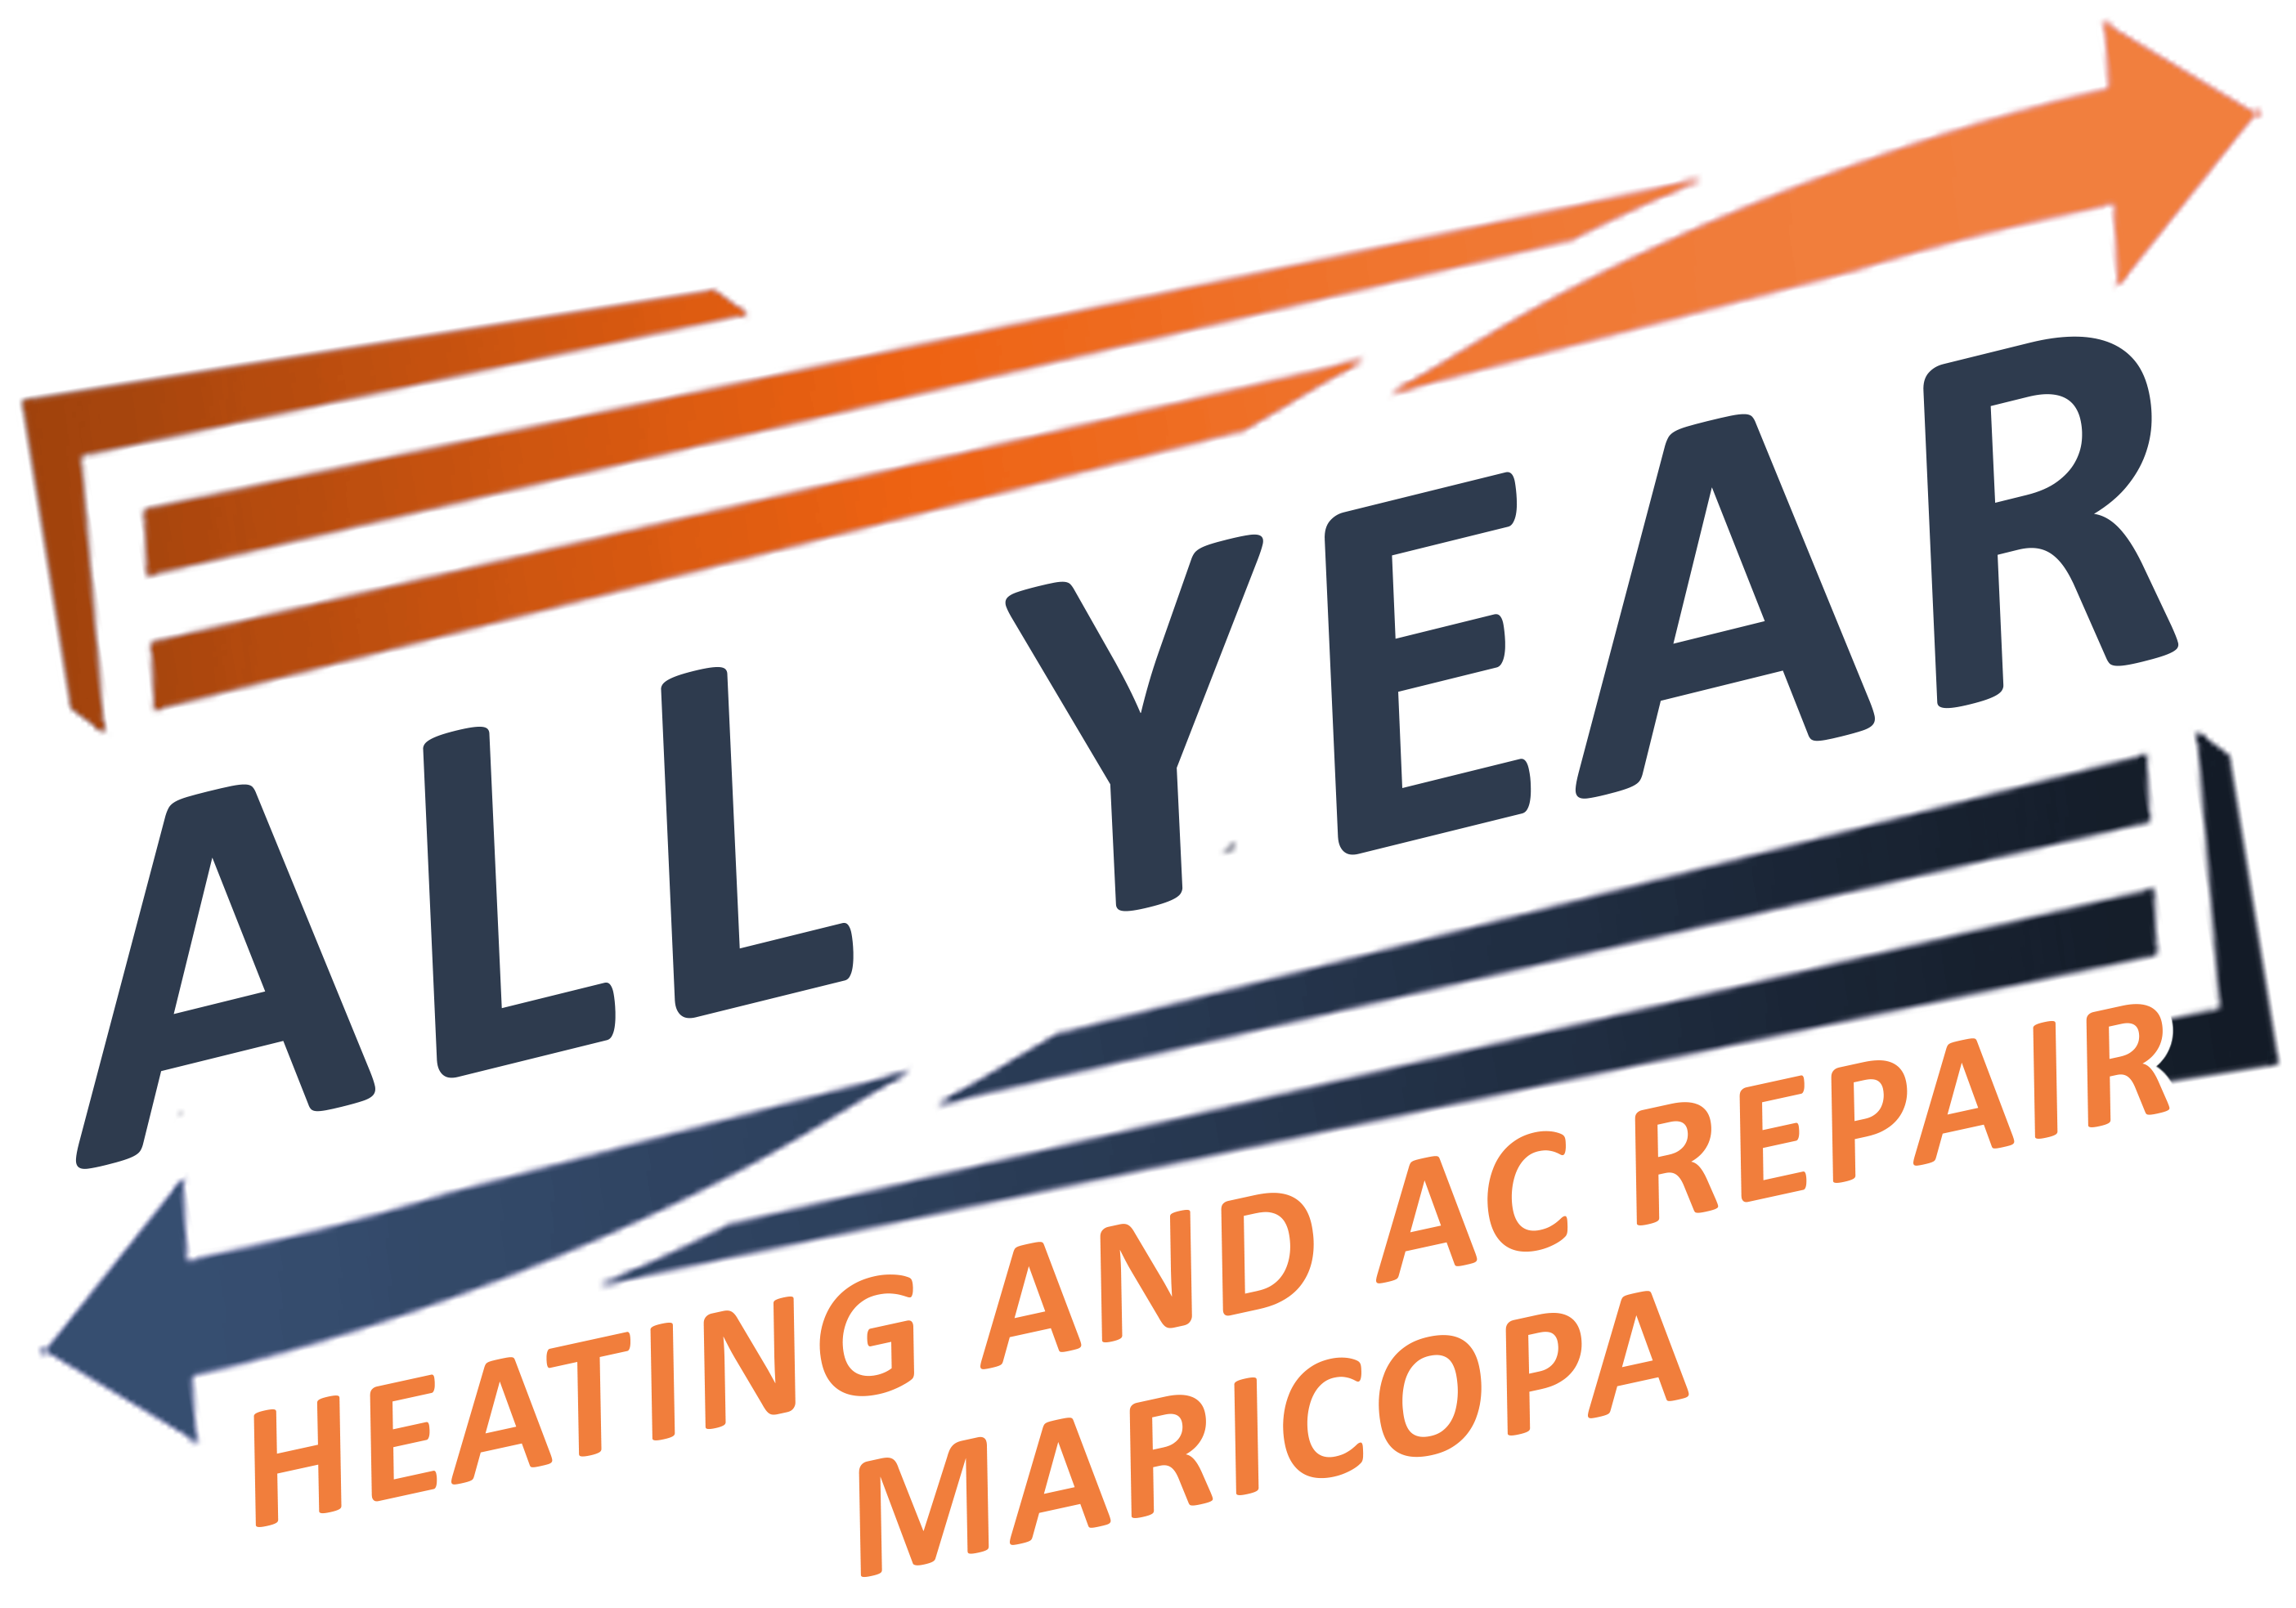 All Year Heating And Ac Repair Maricopa Has Been Providing High